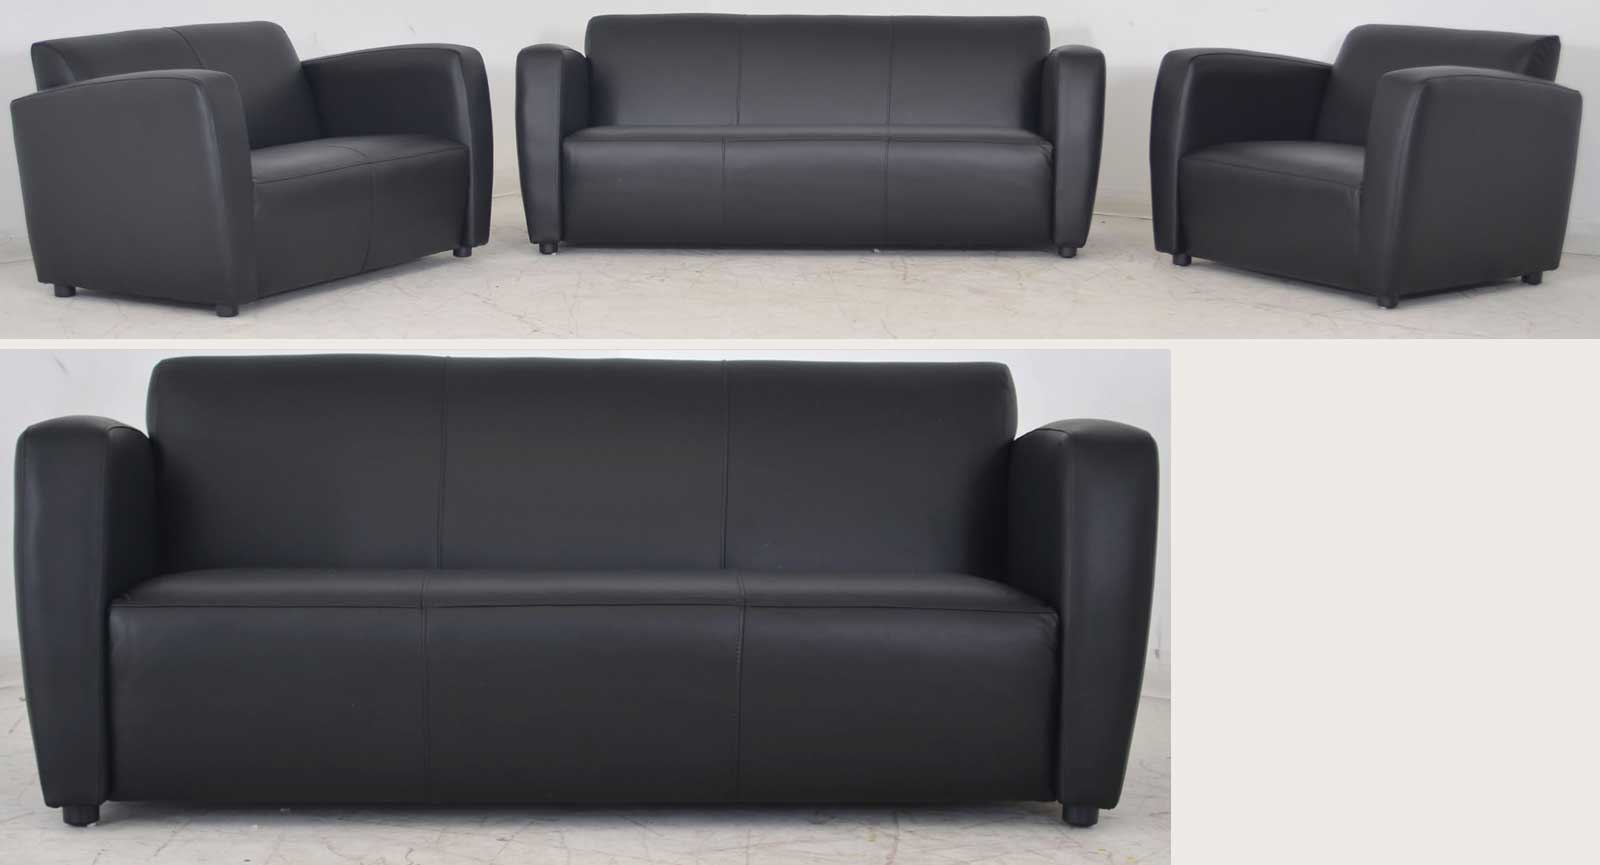 Grey Half Couch Half Sofa Lovely Half Circle Couch Vrogue Design Thesofa